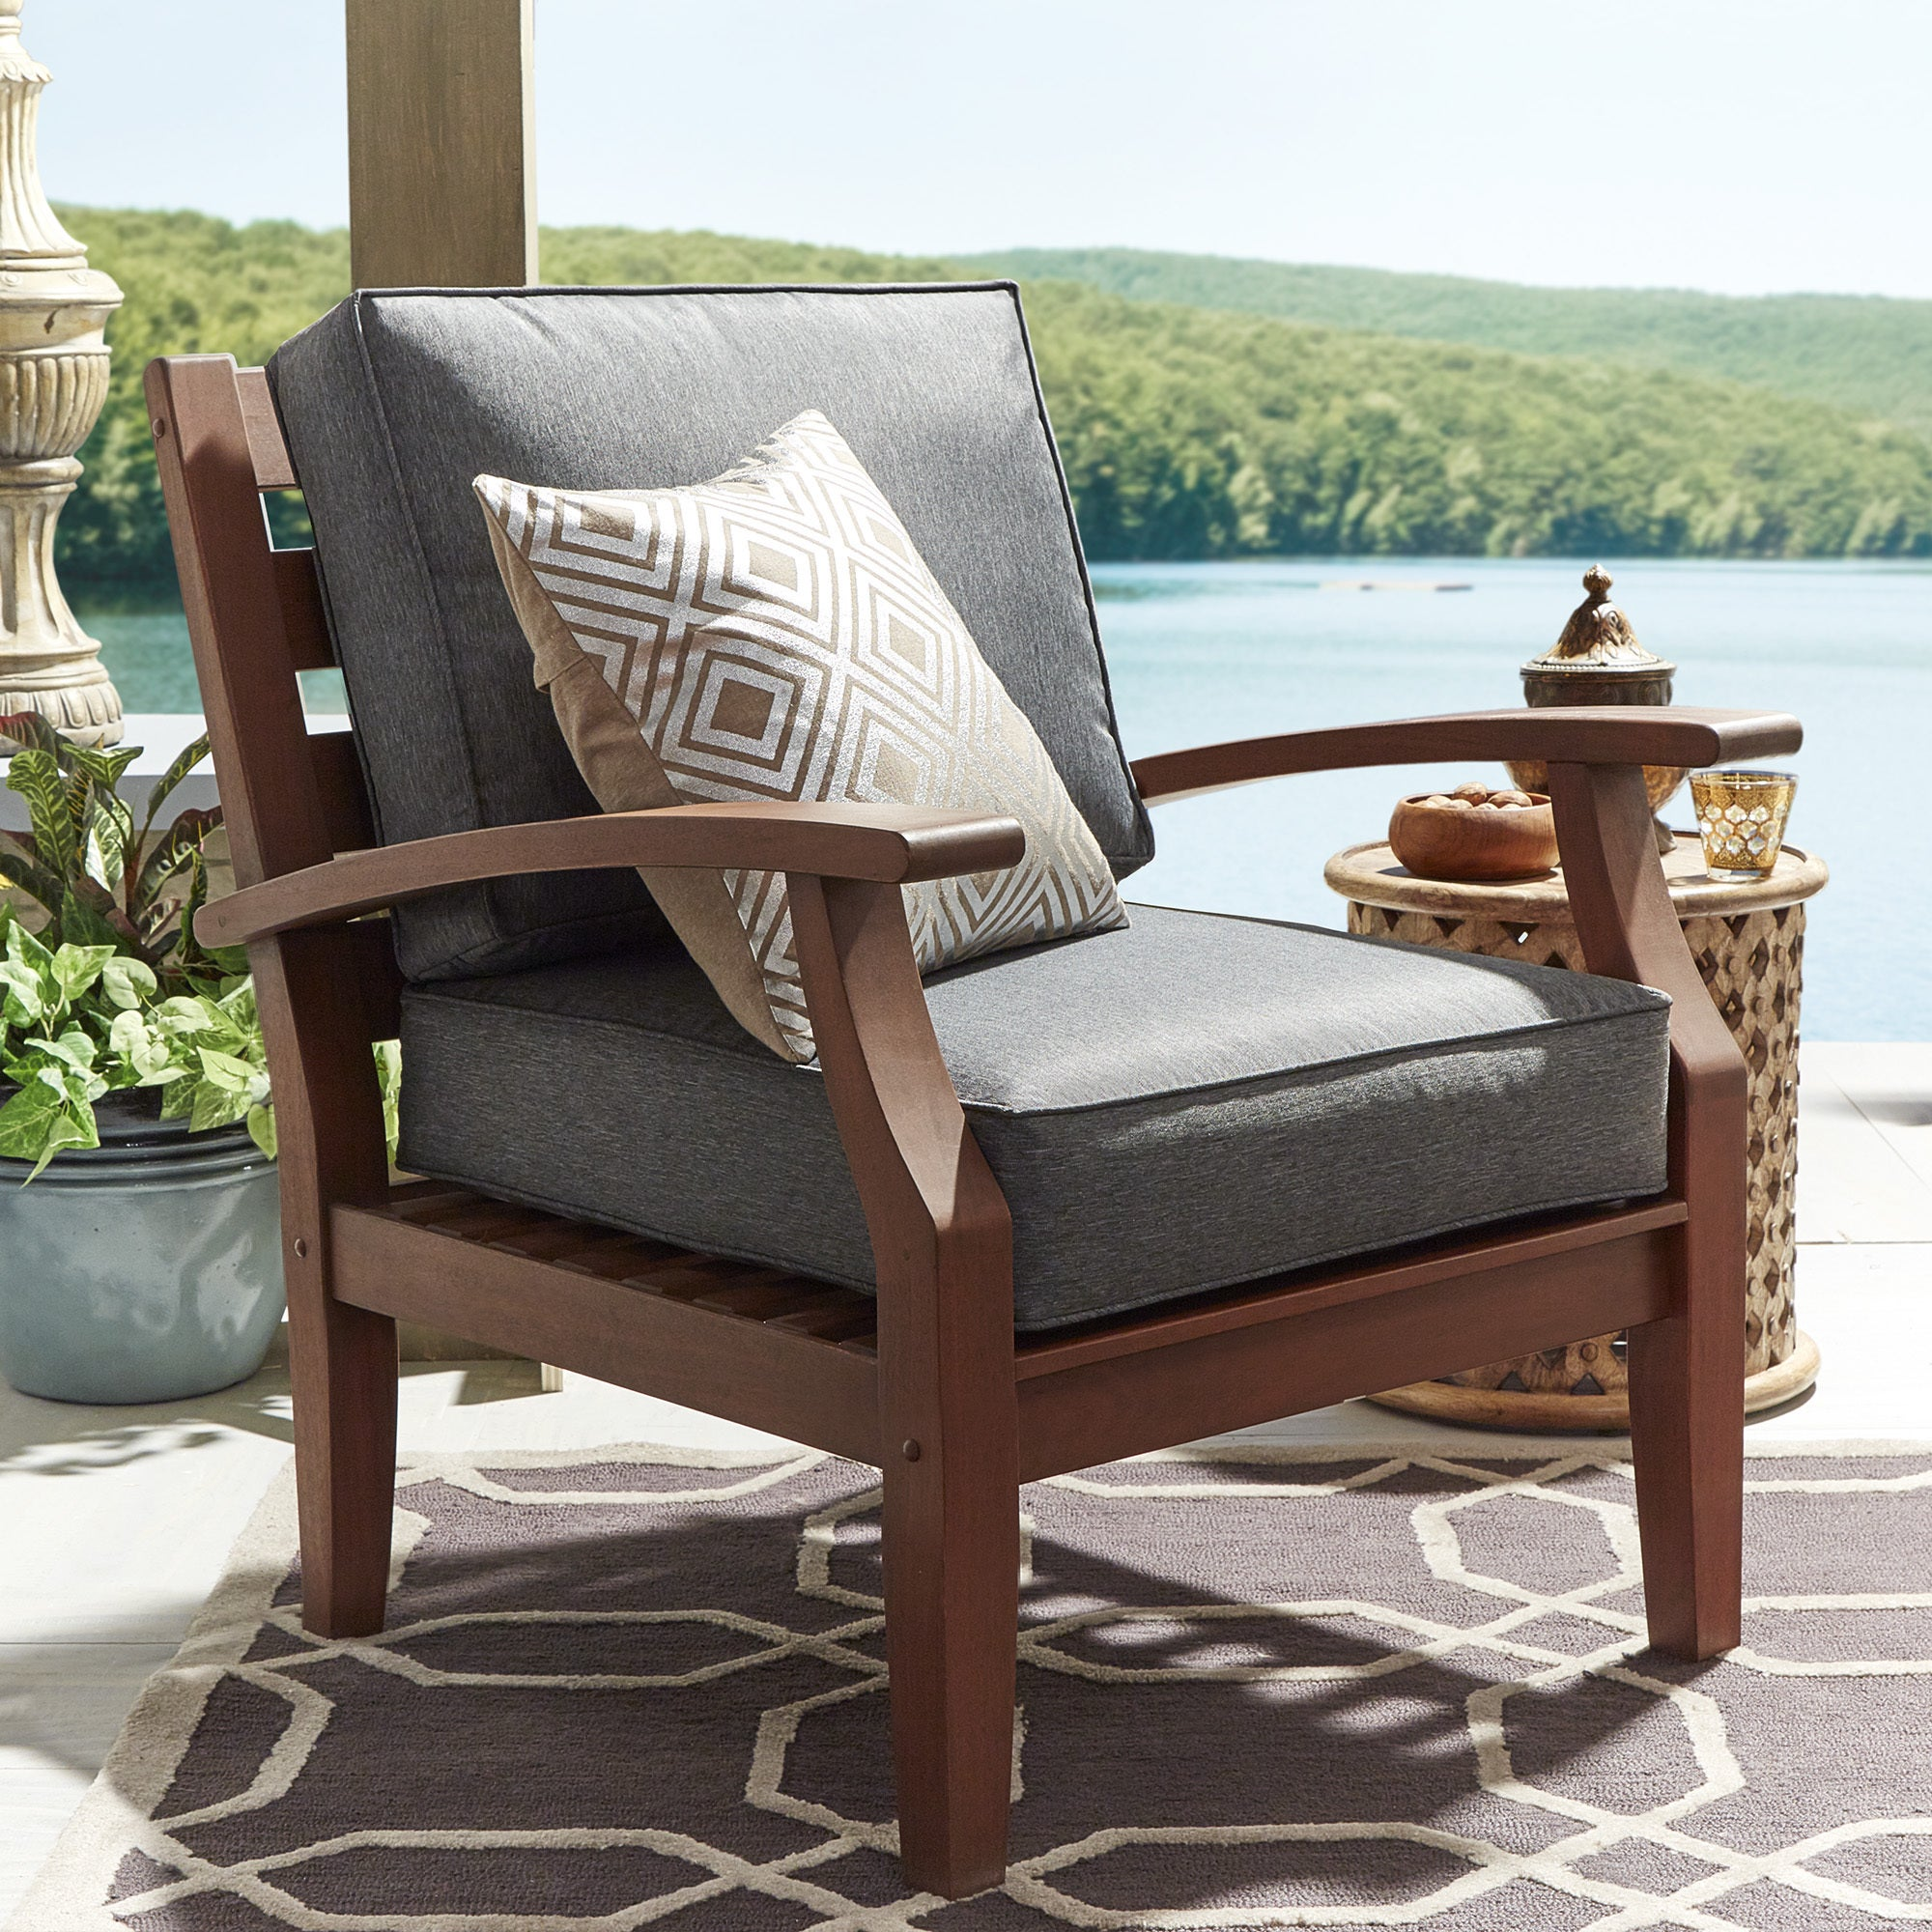 Yasawa Brown Modern Outdoor Cushioned Wood Chair iNSPIRE Q Oasis - Free  Shipping Today - Overstock.com - 19796801